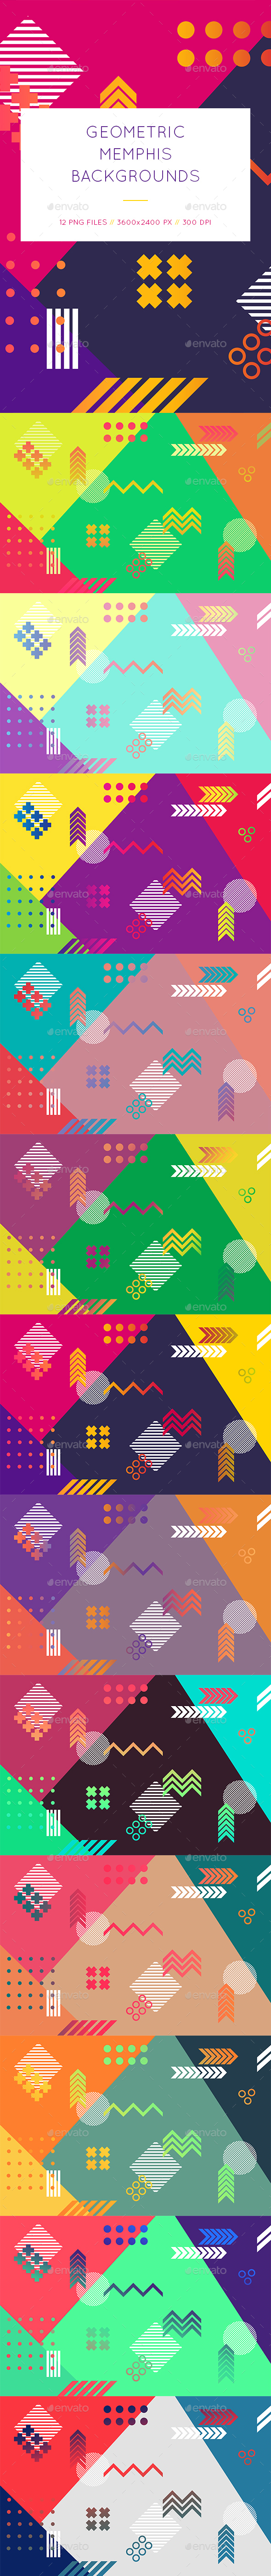 Geometric Memphis Backgrounds - Abstract Backgrounds